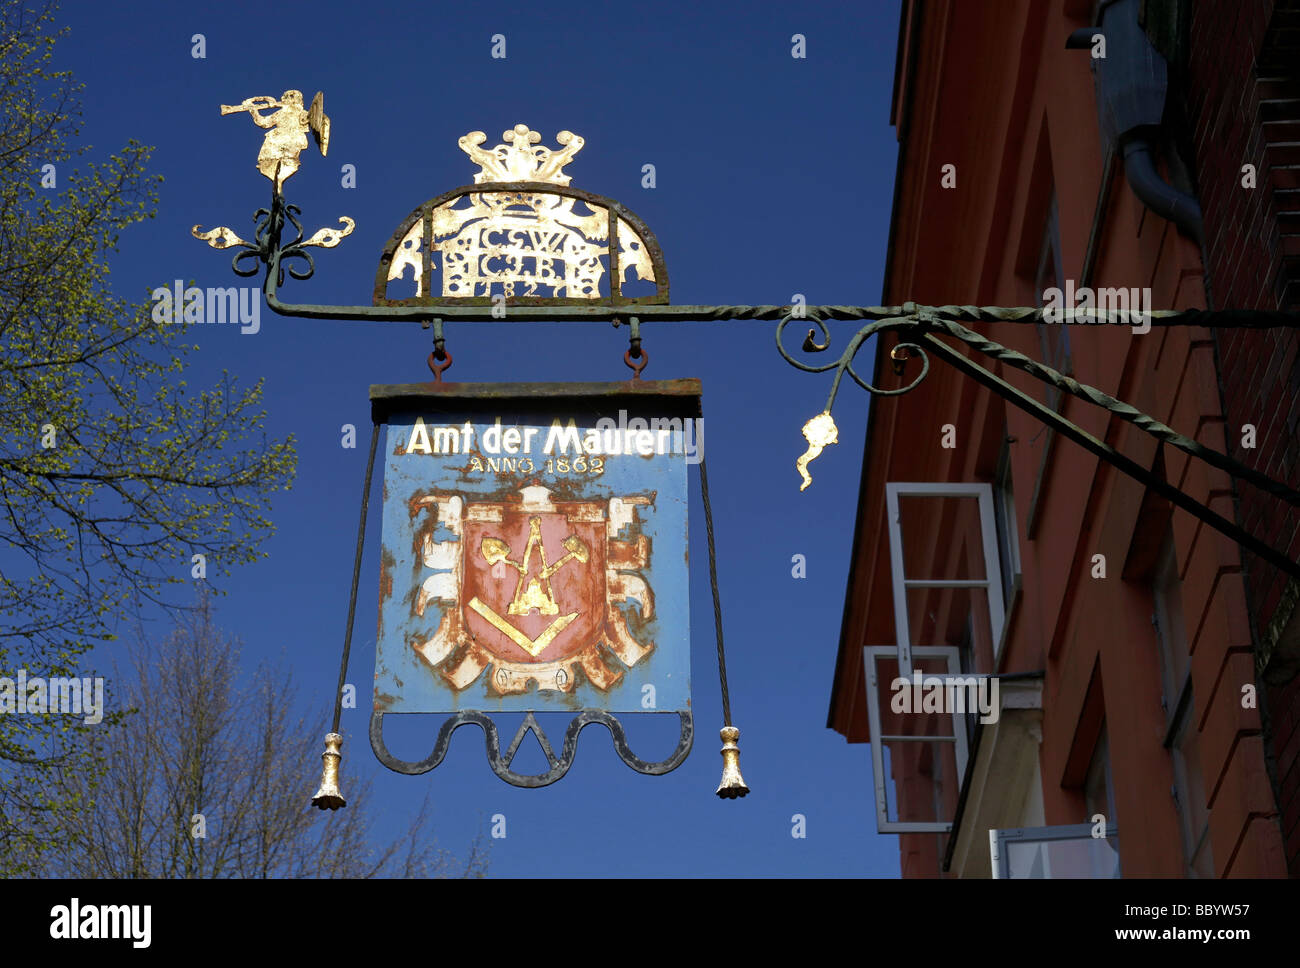 Craftsman advertising panel reading Amt der Maurer on a building in the historic town, Moelln, Holstein, Schleswig - Stock Image